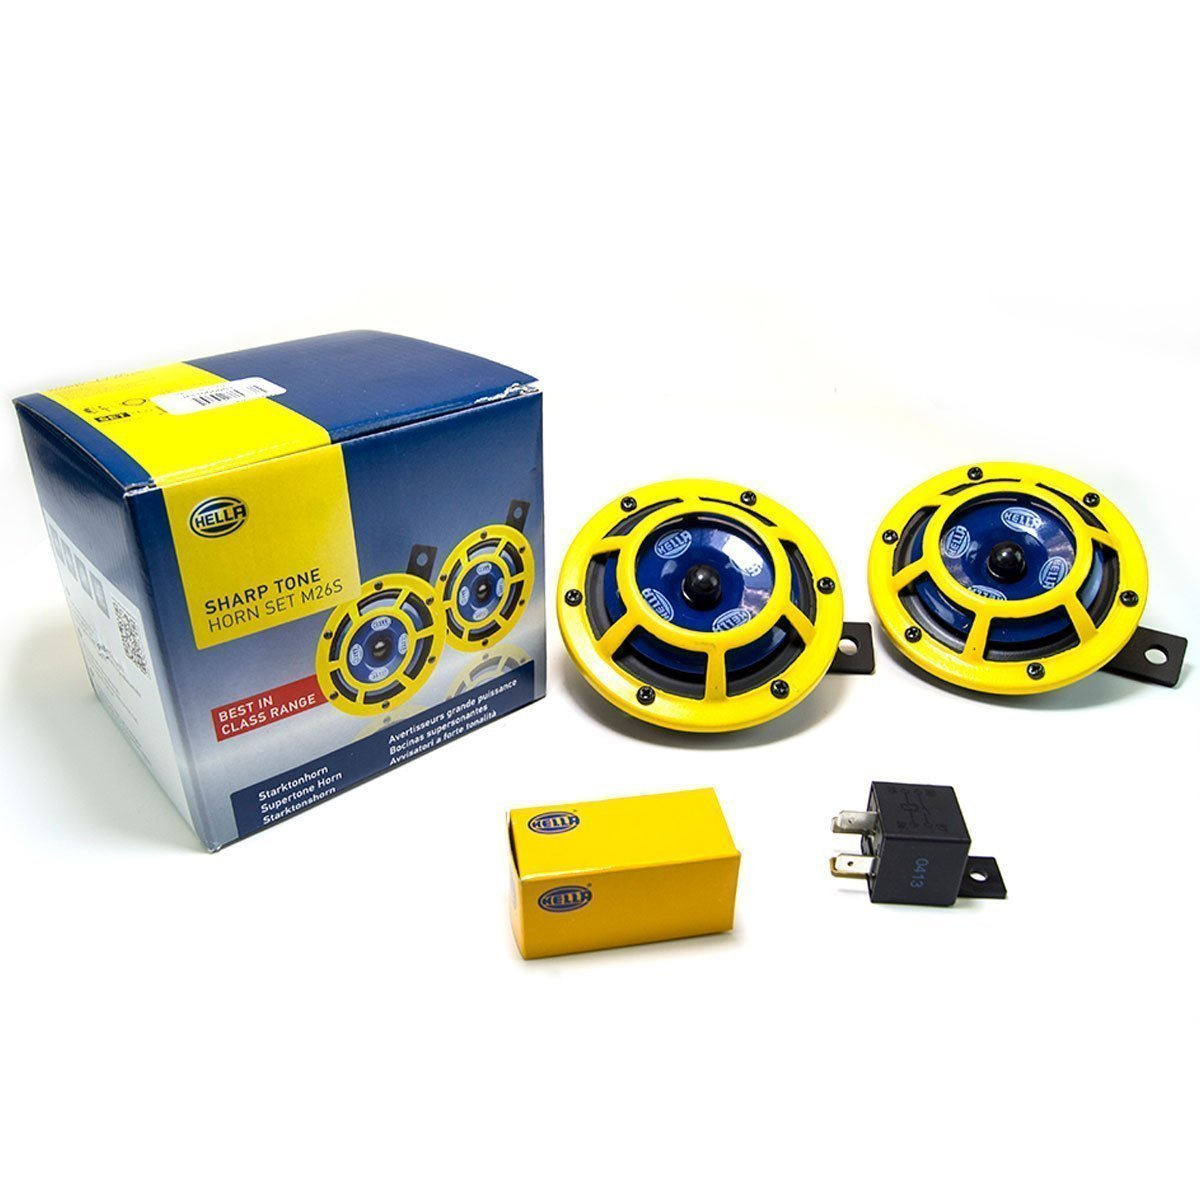 Hella - Sharptone Horn Kit 12V 415/350Hz - Pair of 2 - YELLOW - UNIVERSAL - H31000001